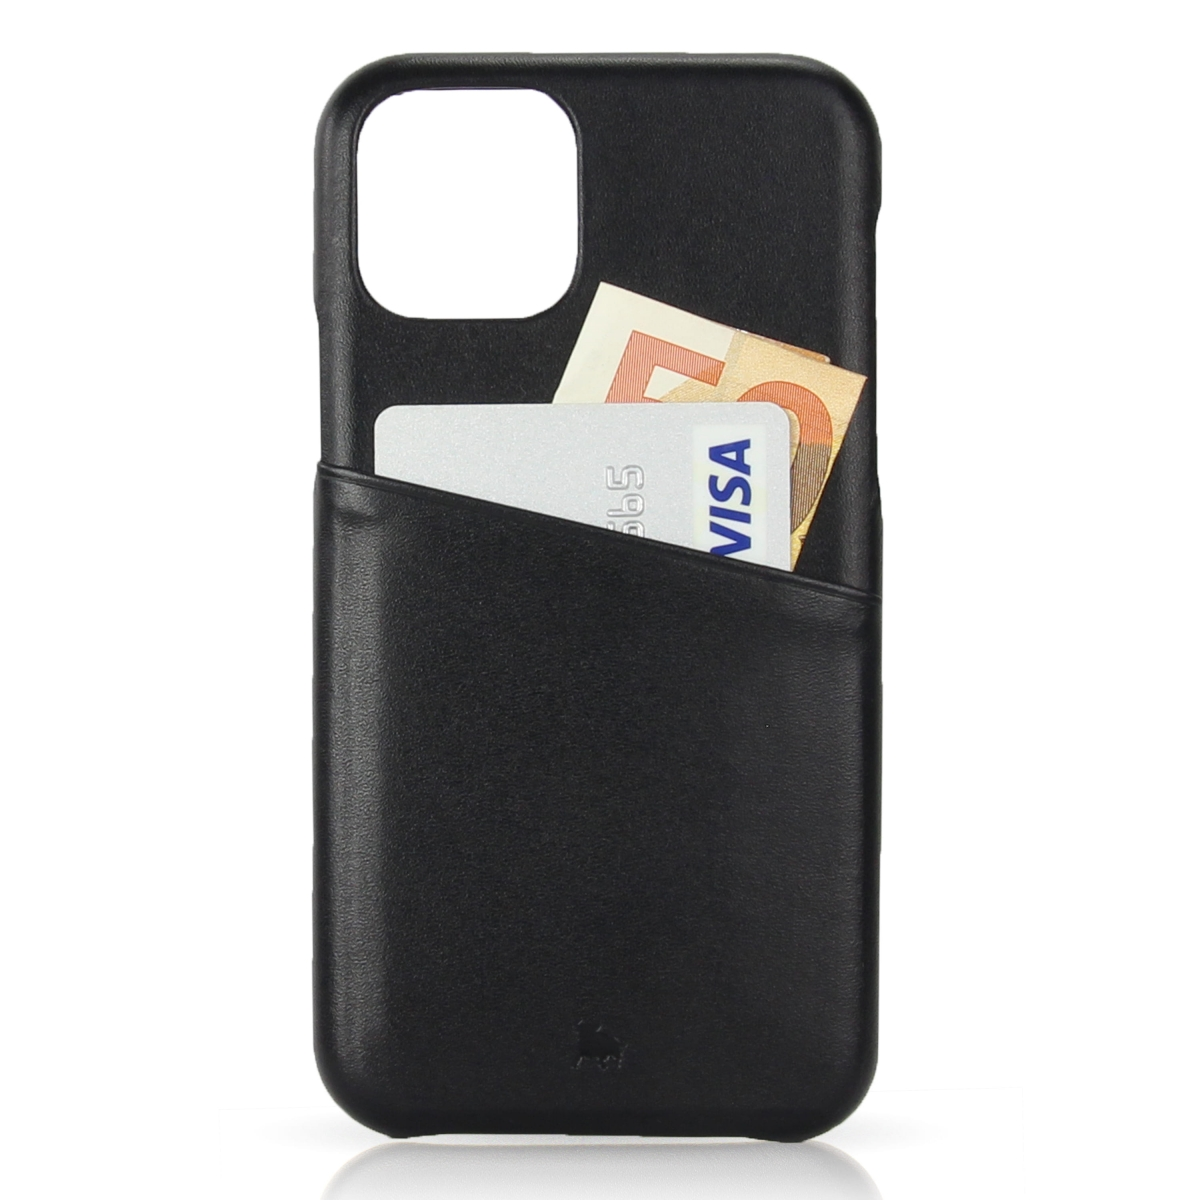 iPhone XI 11 Pro Max Case with Card Slot